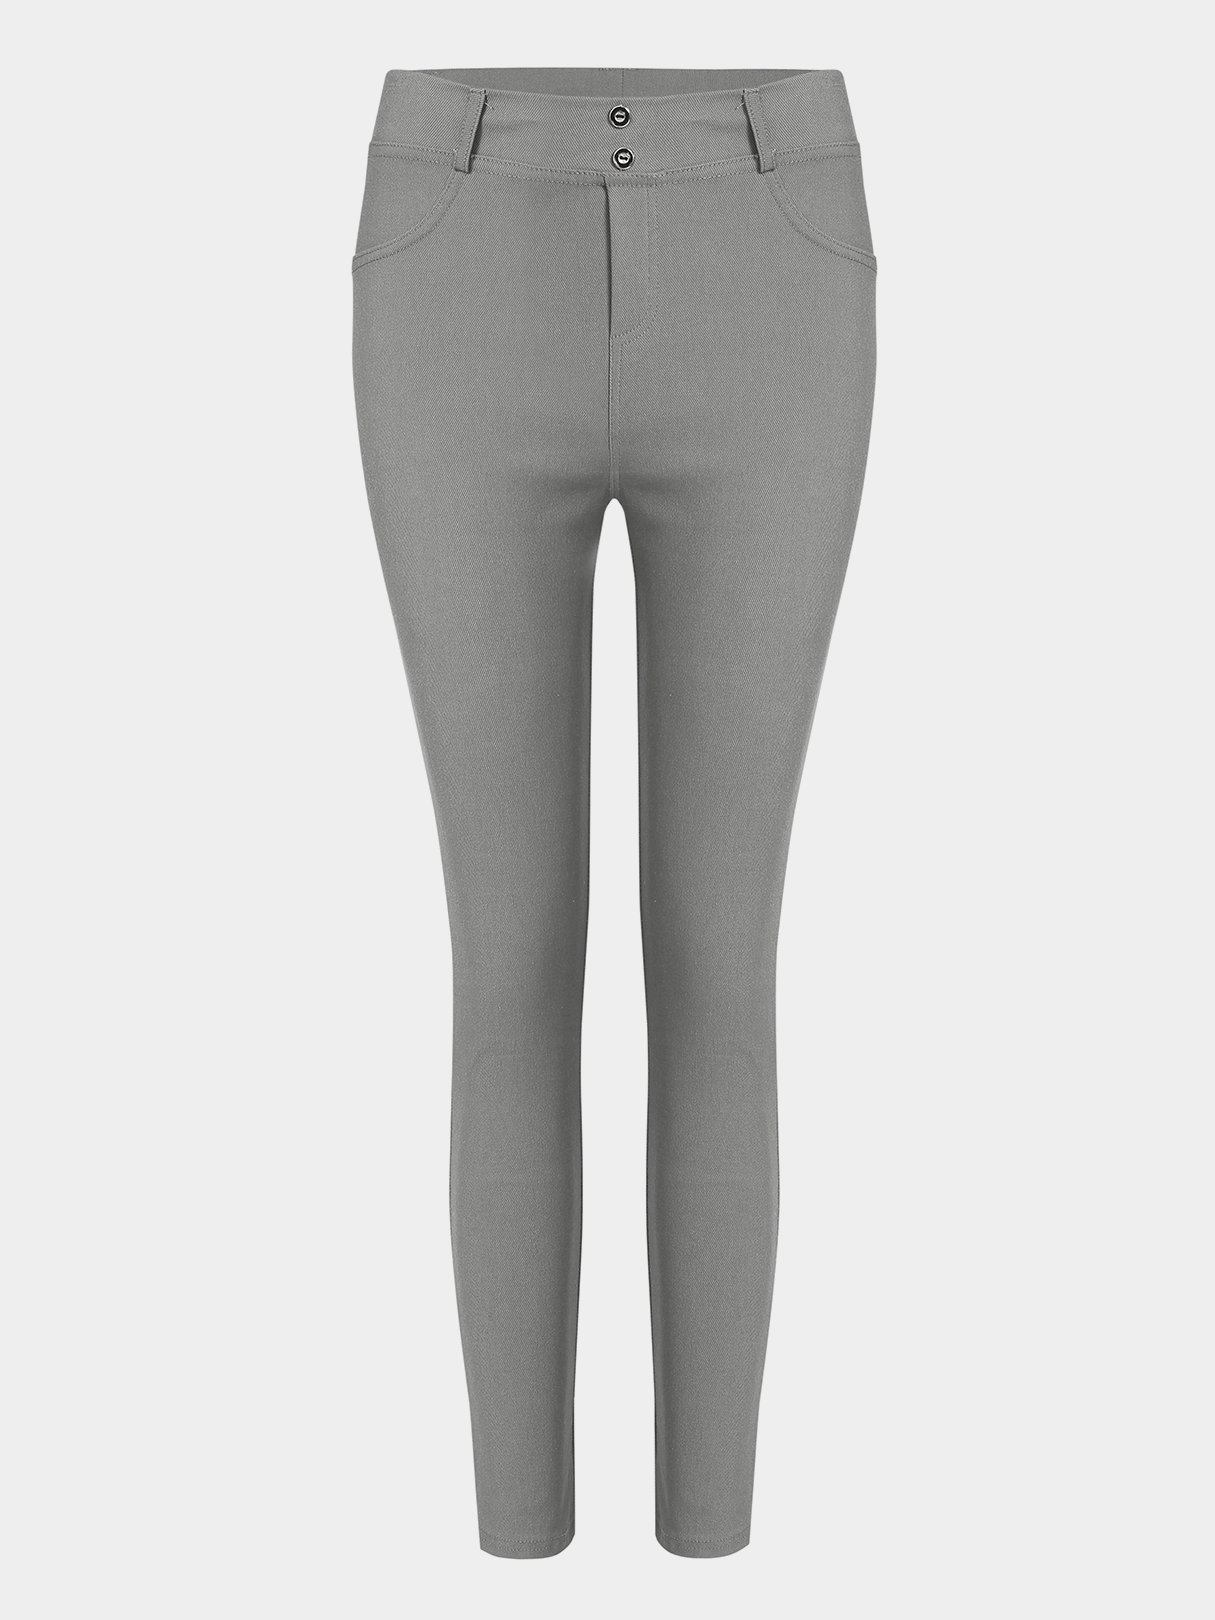 Grey Simple Ladies Style Fashion Leggings